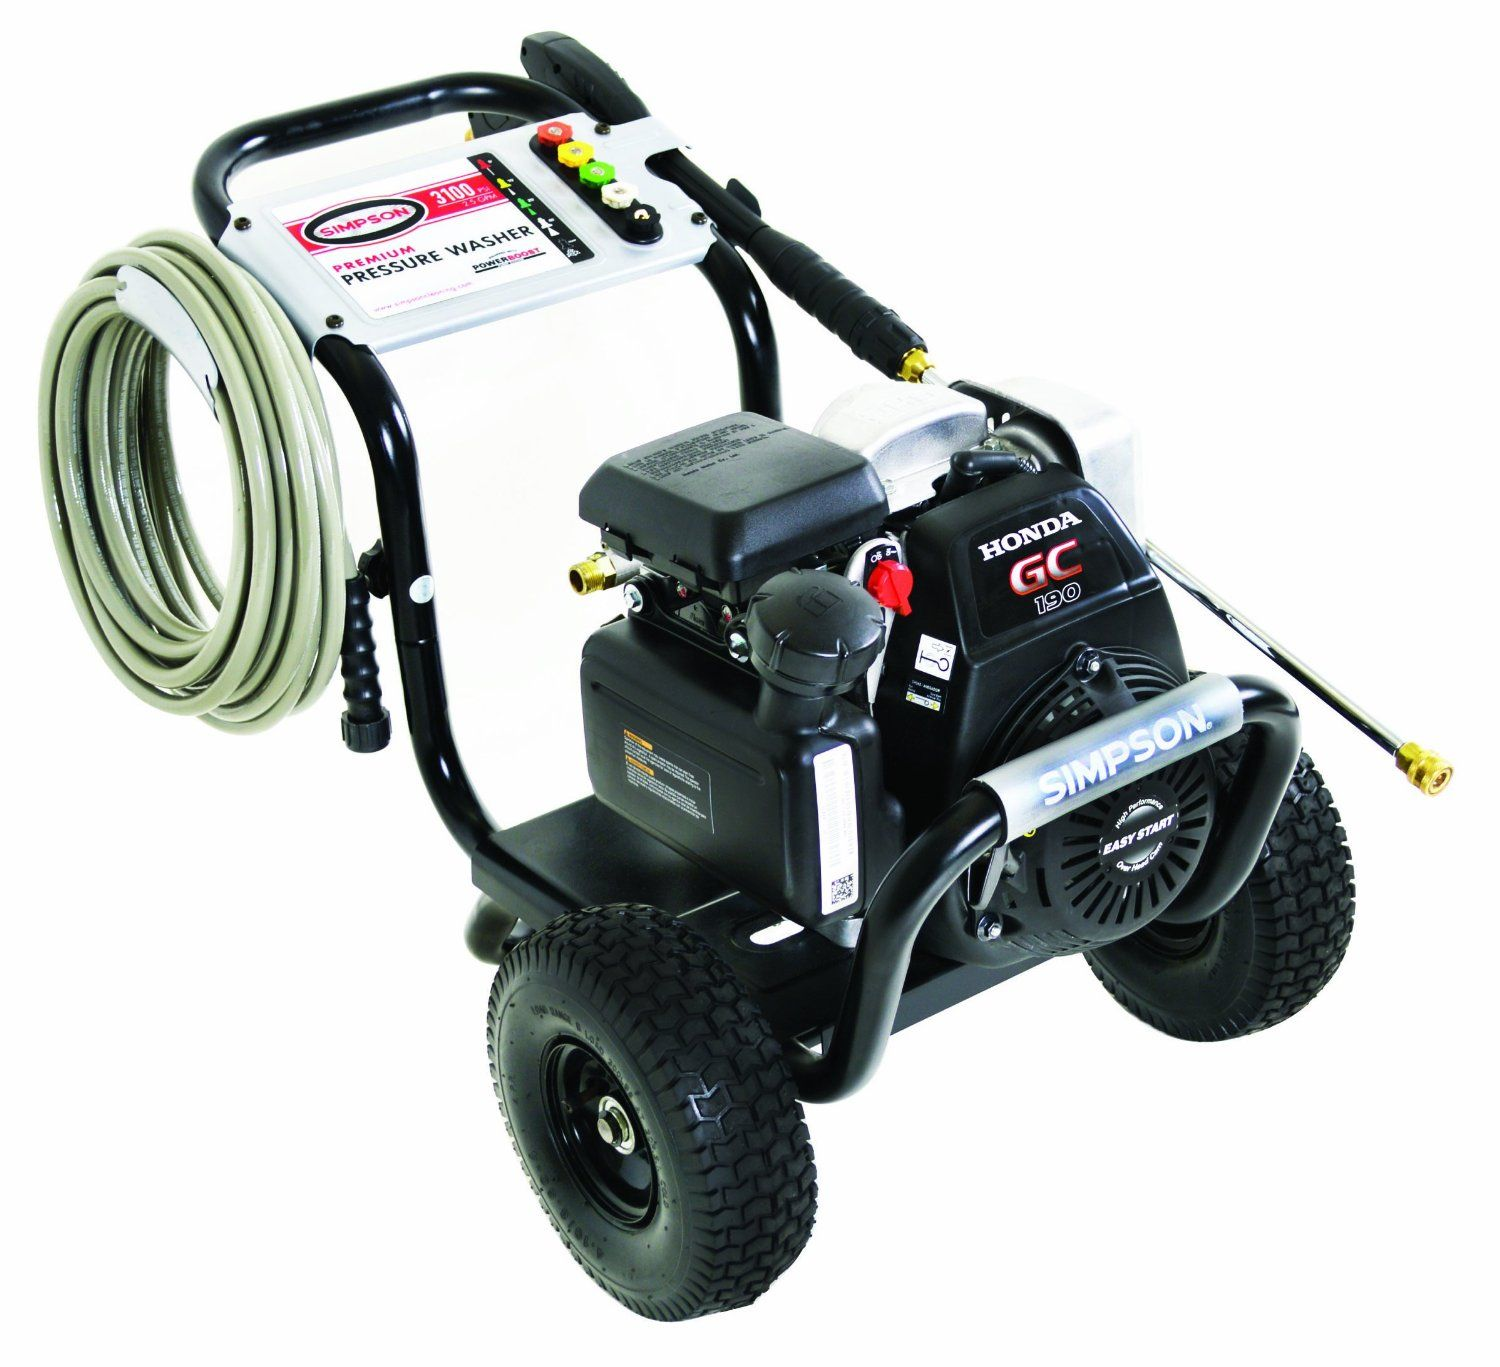 Top 10 Best Pressure Washer Pumps In 2020 Reviews Best Pressure Washer Electric Pressure Washer Pressure Washer